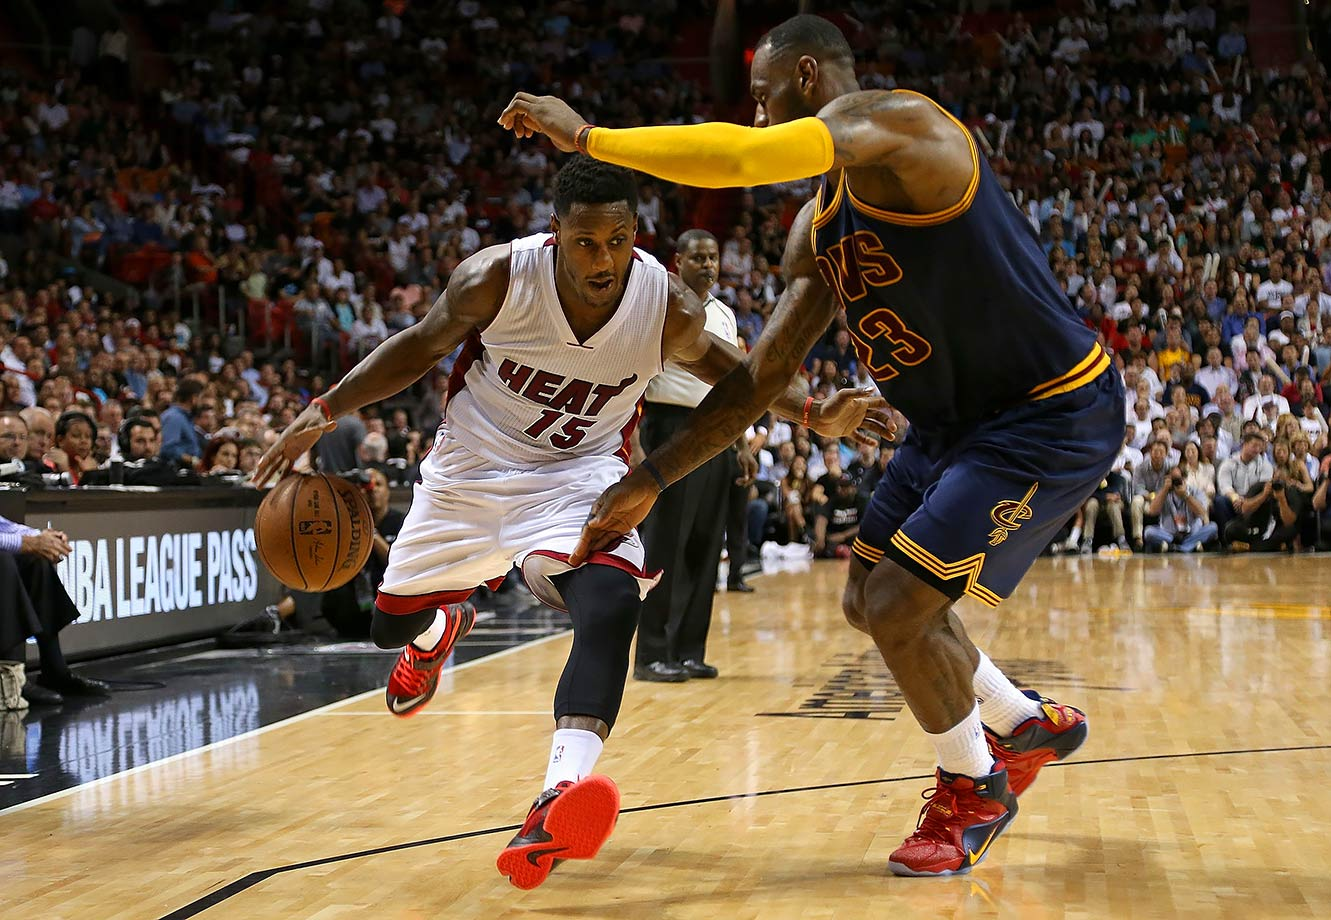 Mario Chalmers still thinks he is better than LeBron.